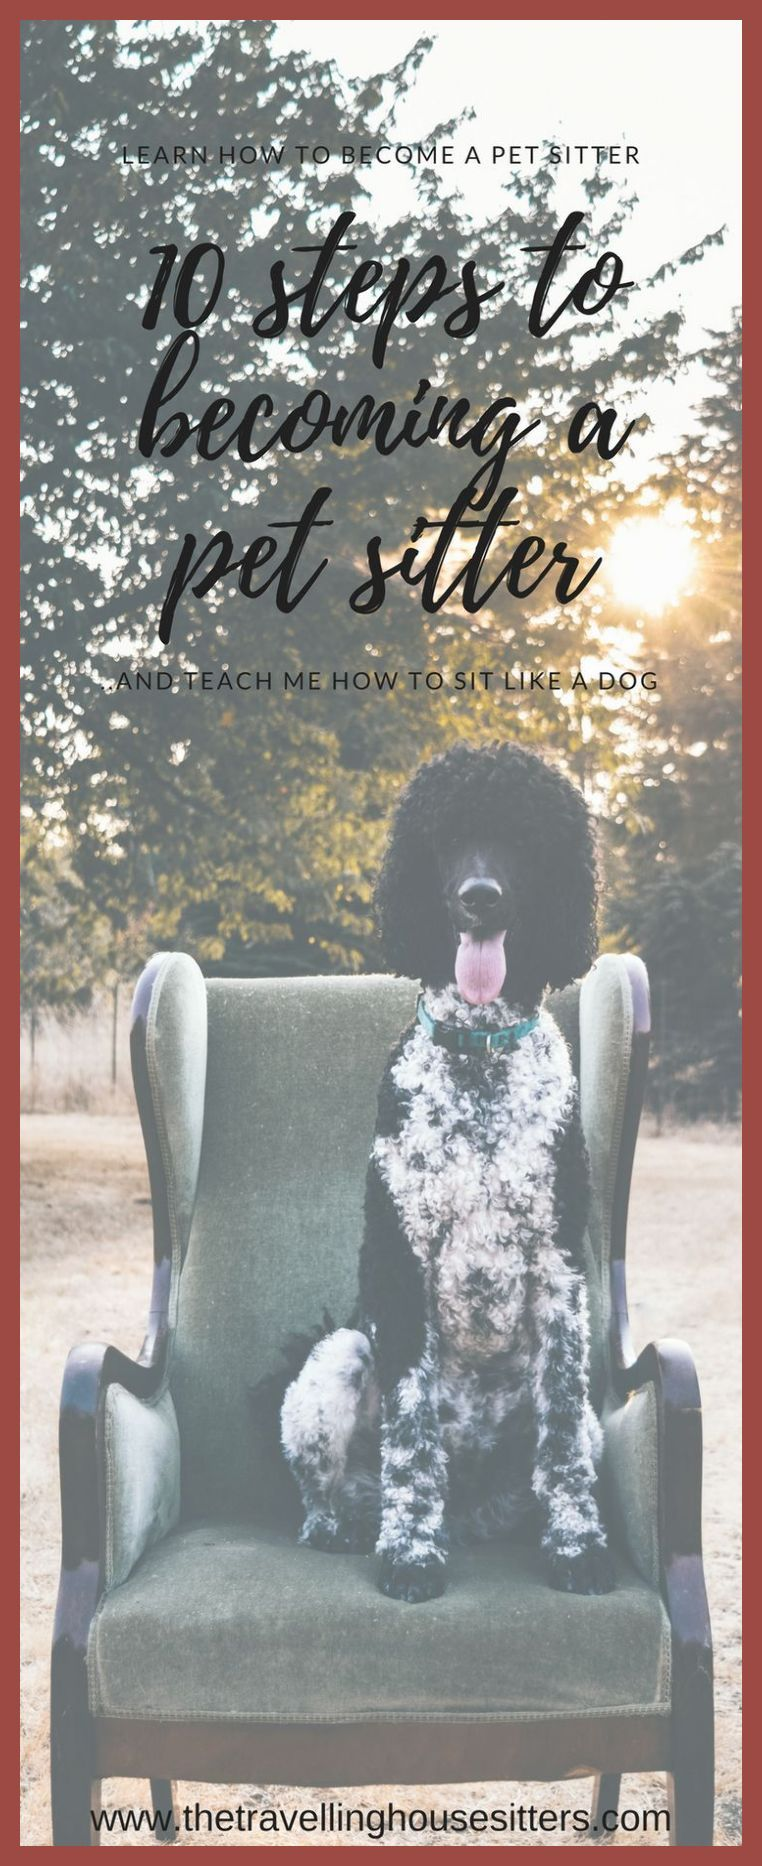 Dog sitting solutions for when youre away dog sitting